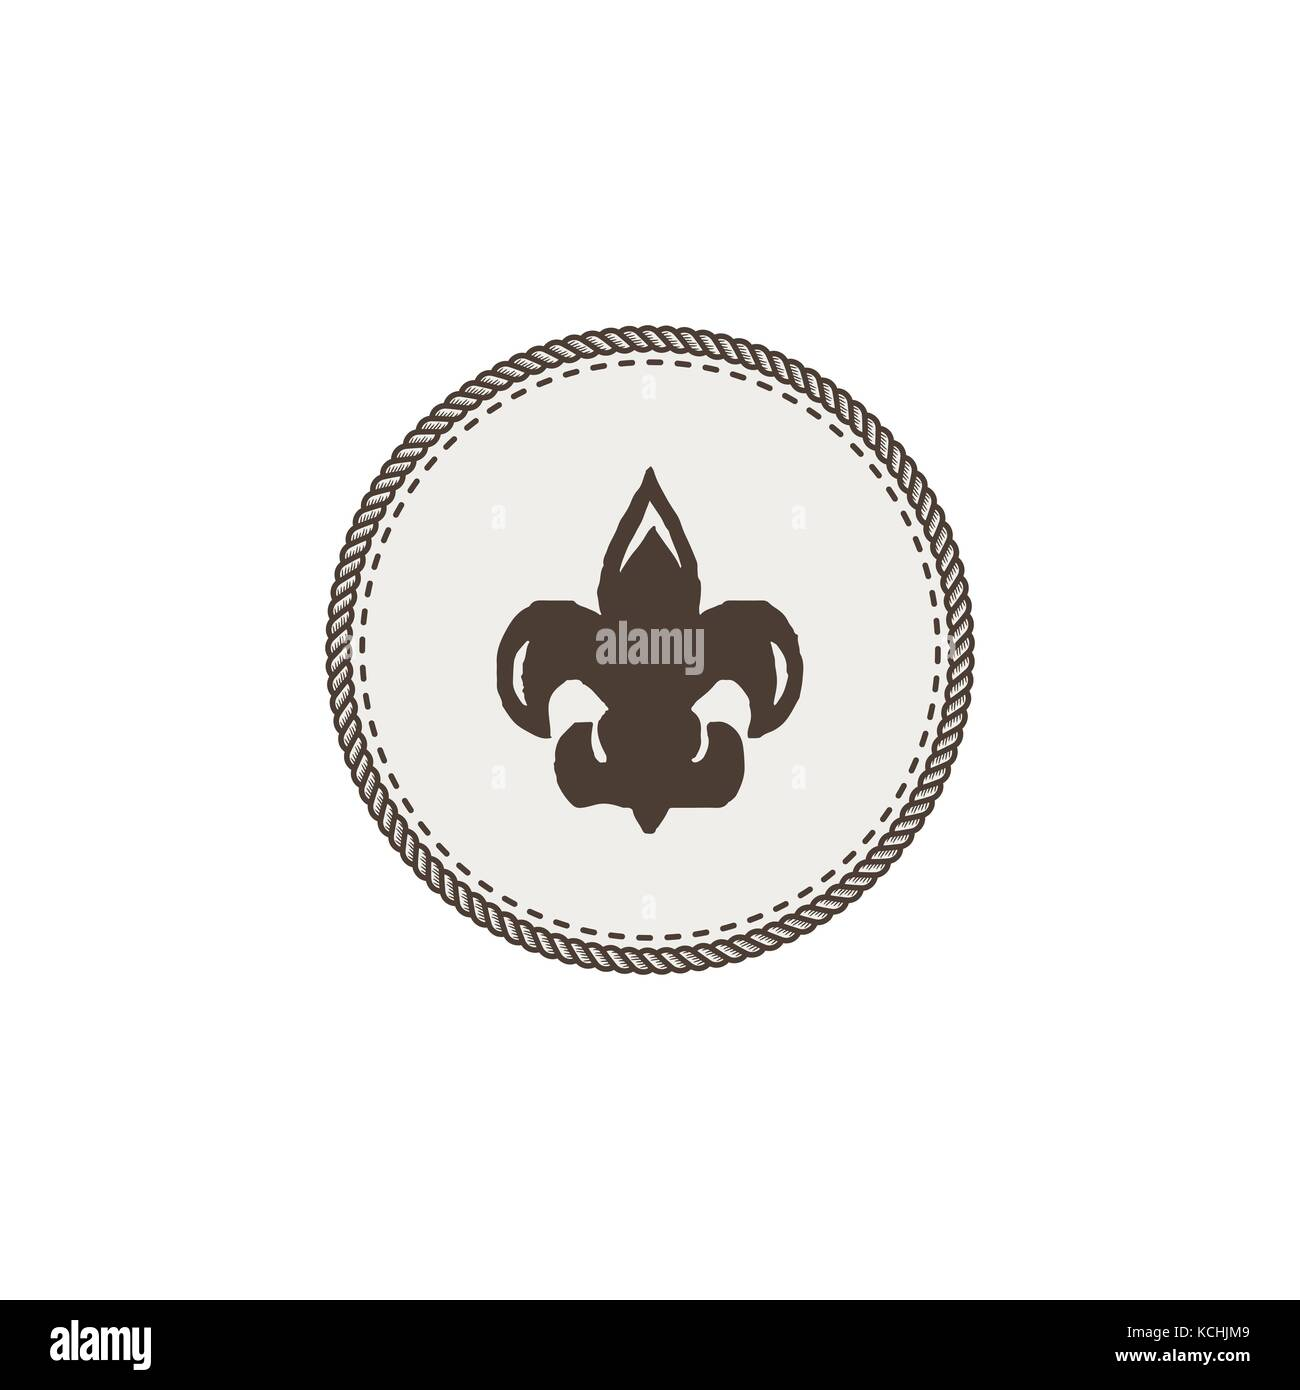 Scout symbol icon. Outdoor adventure retro design. Camping pictogram. Stock vector illustration isolated on white - Stock Vector